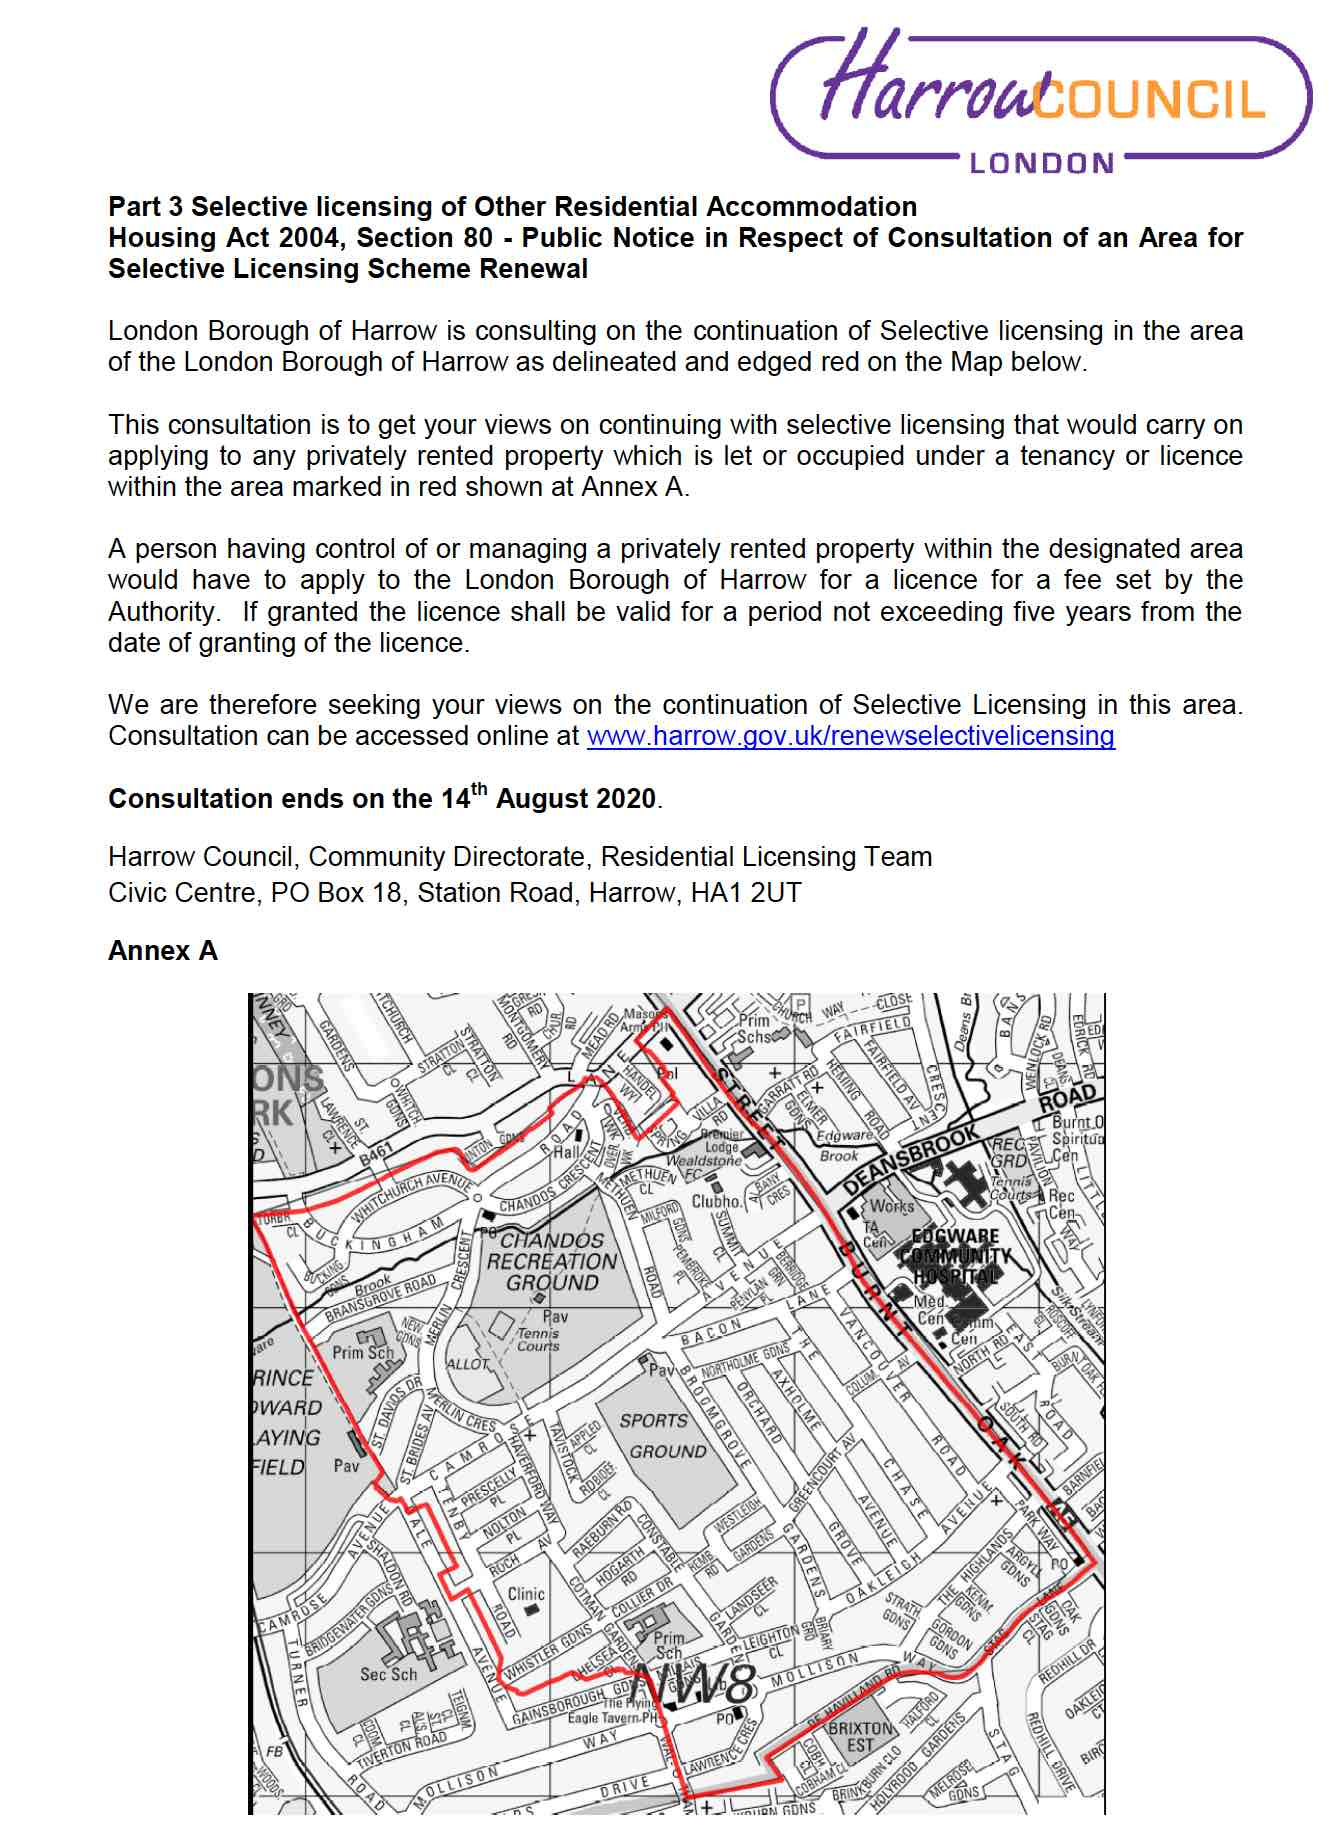 Harrow selective licensing consultation for Edgware 2020